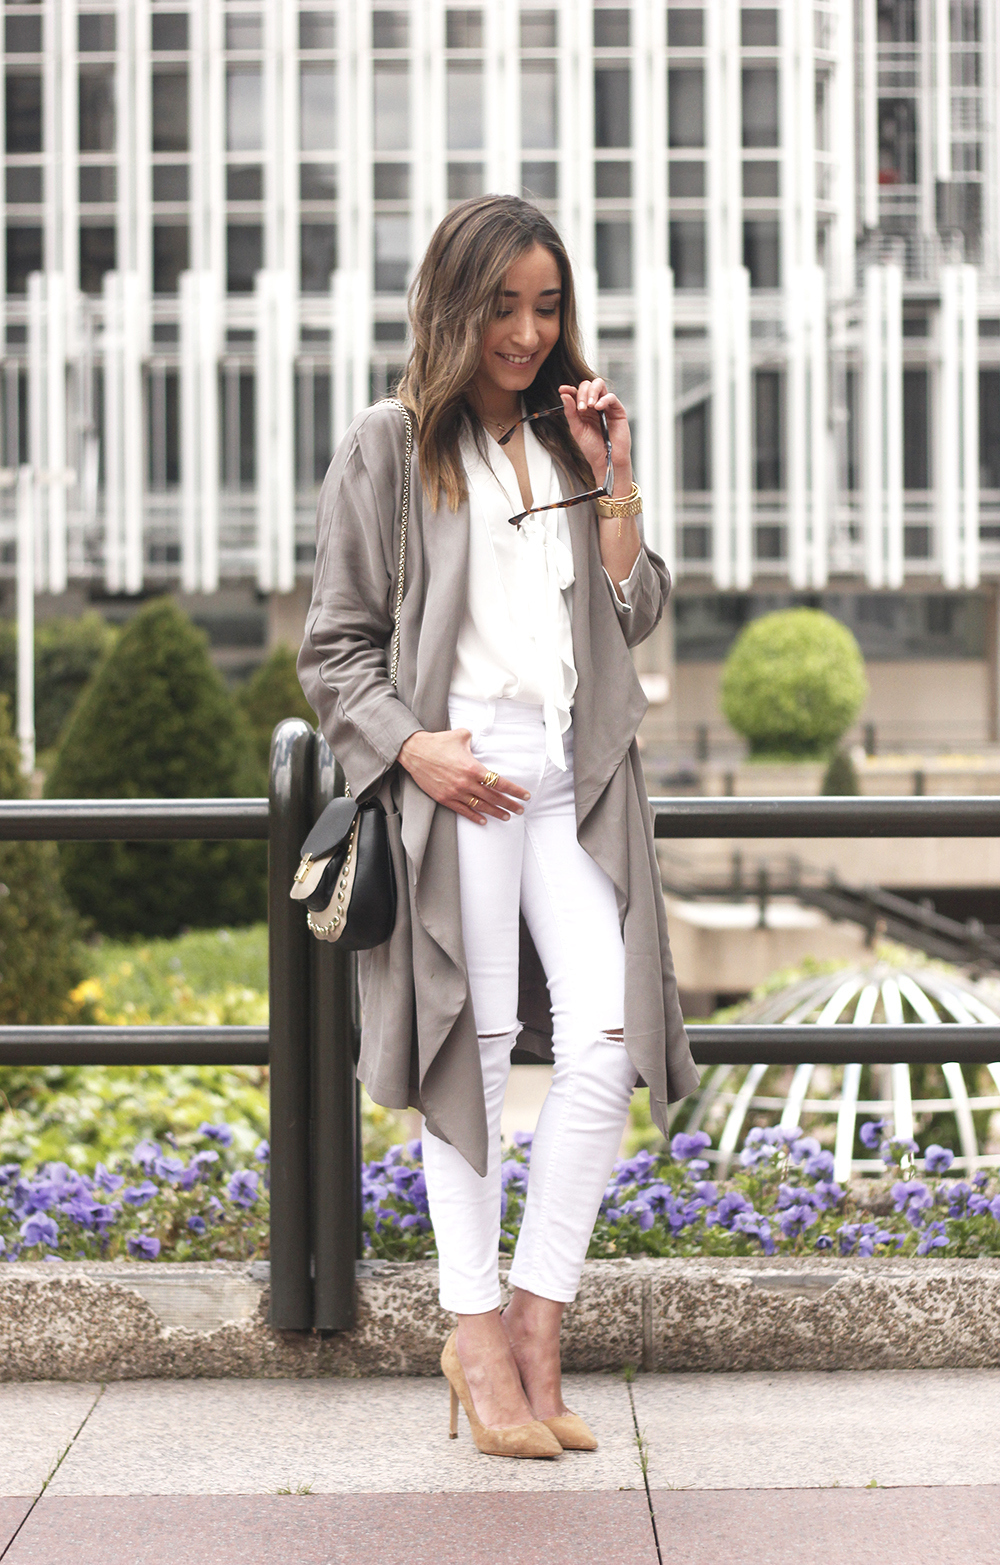 grey and white outfit trench spring streetstyle sunnies nude heels ripped jeans06